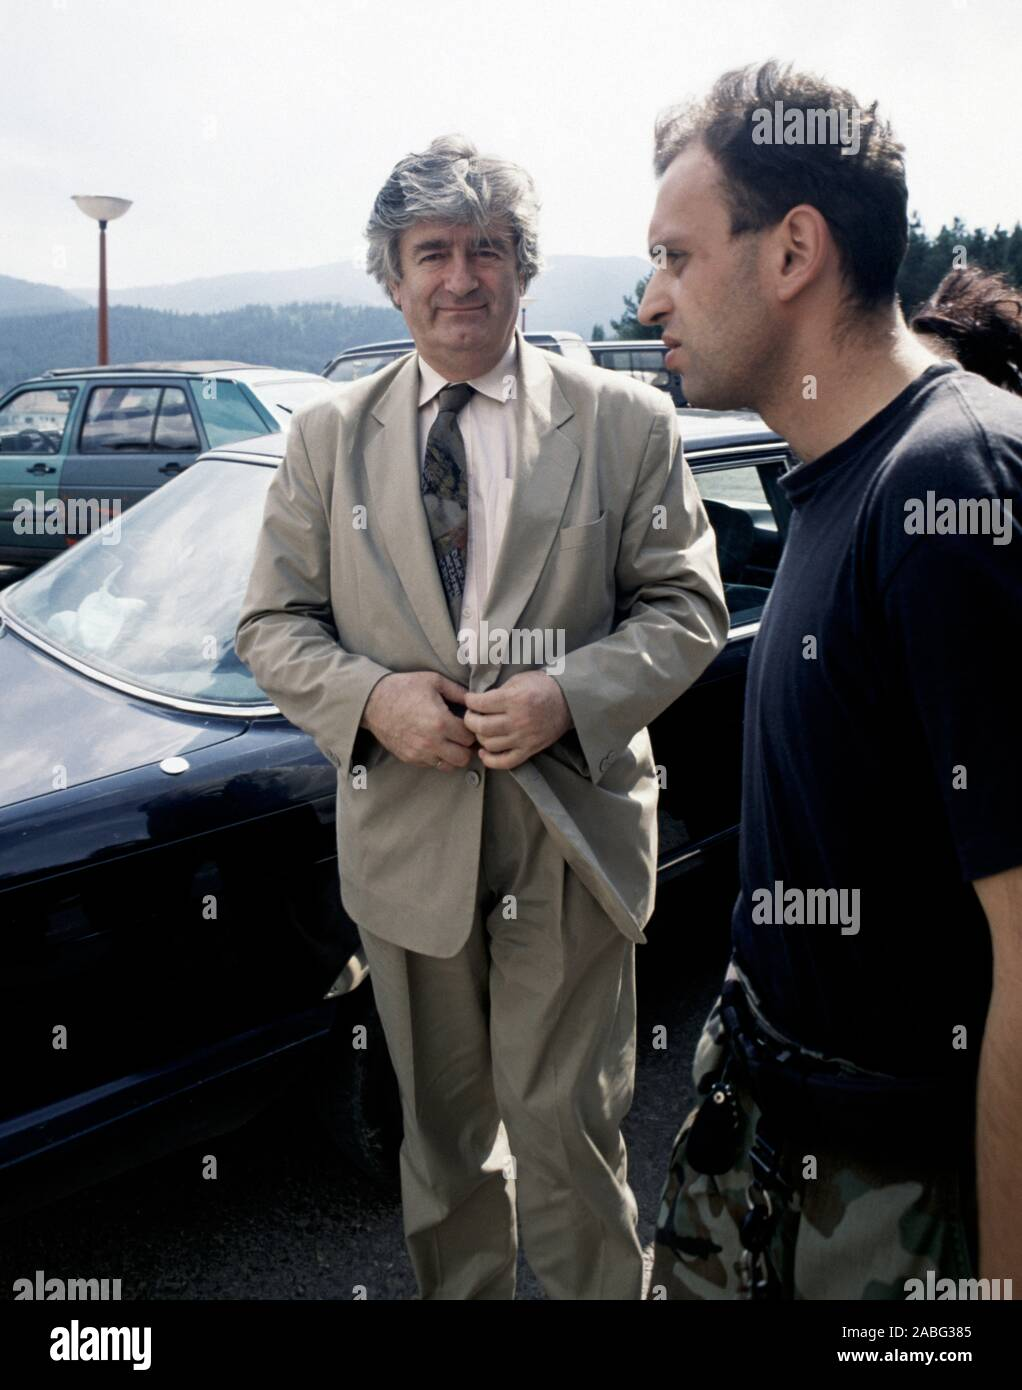 8th August 1993 During the war in Bosnia: the Bosnian Serb leader, Dr. Radovan Karadžić, arriving at the Serb Democratic Party headquarters in the Hotel Panorama in Pale. Stock Photo